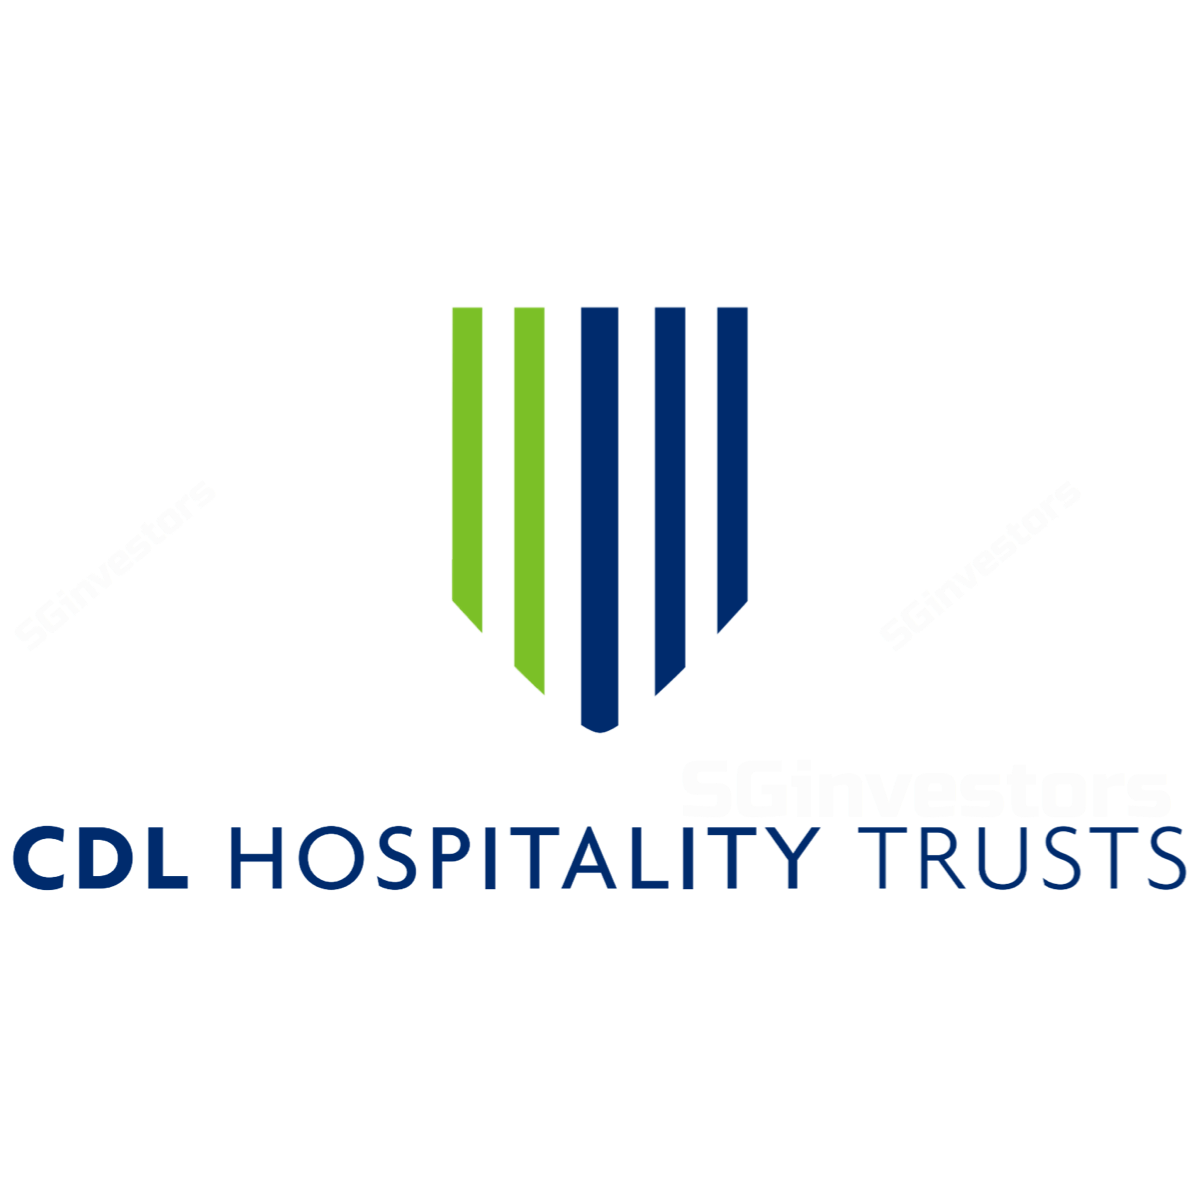 CDL Hospitality Trusts - RHB Invest 2017-01-27: 4Q16 Results Flash ~ No signs of bottoming yet